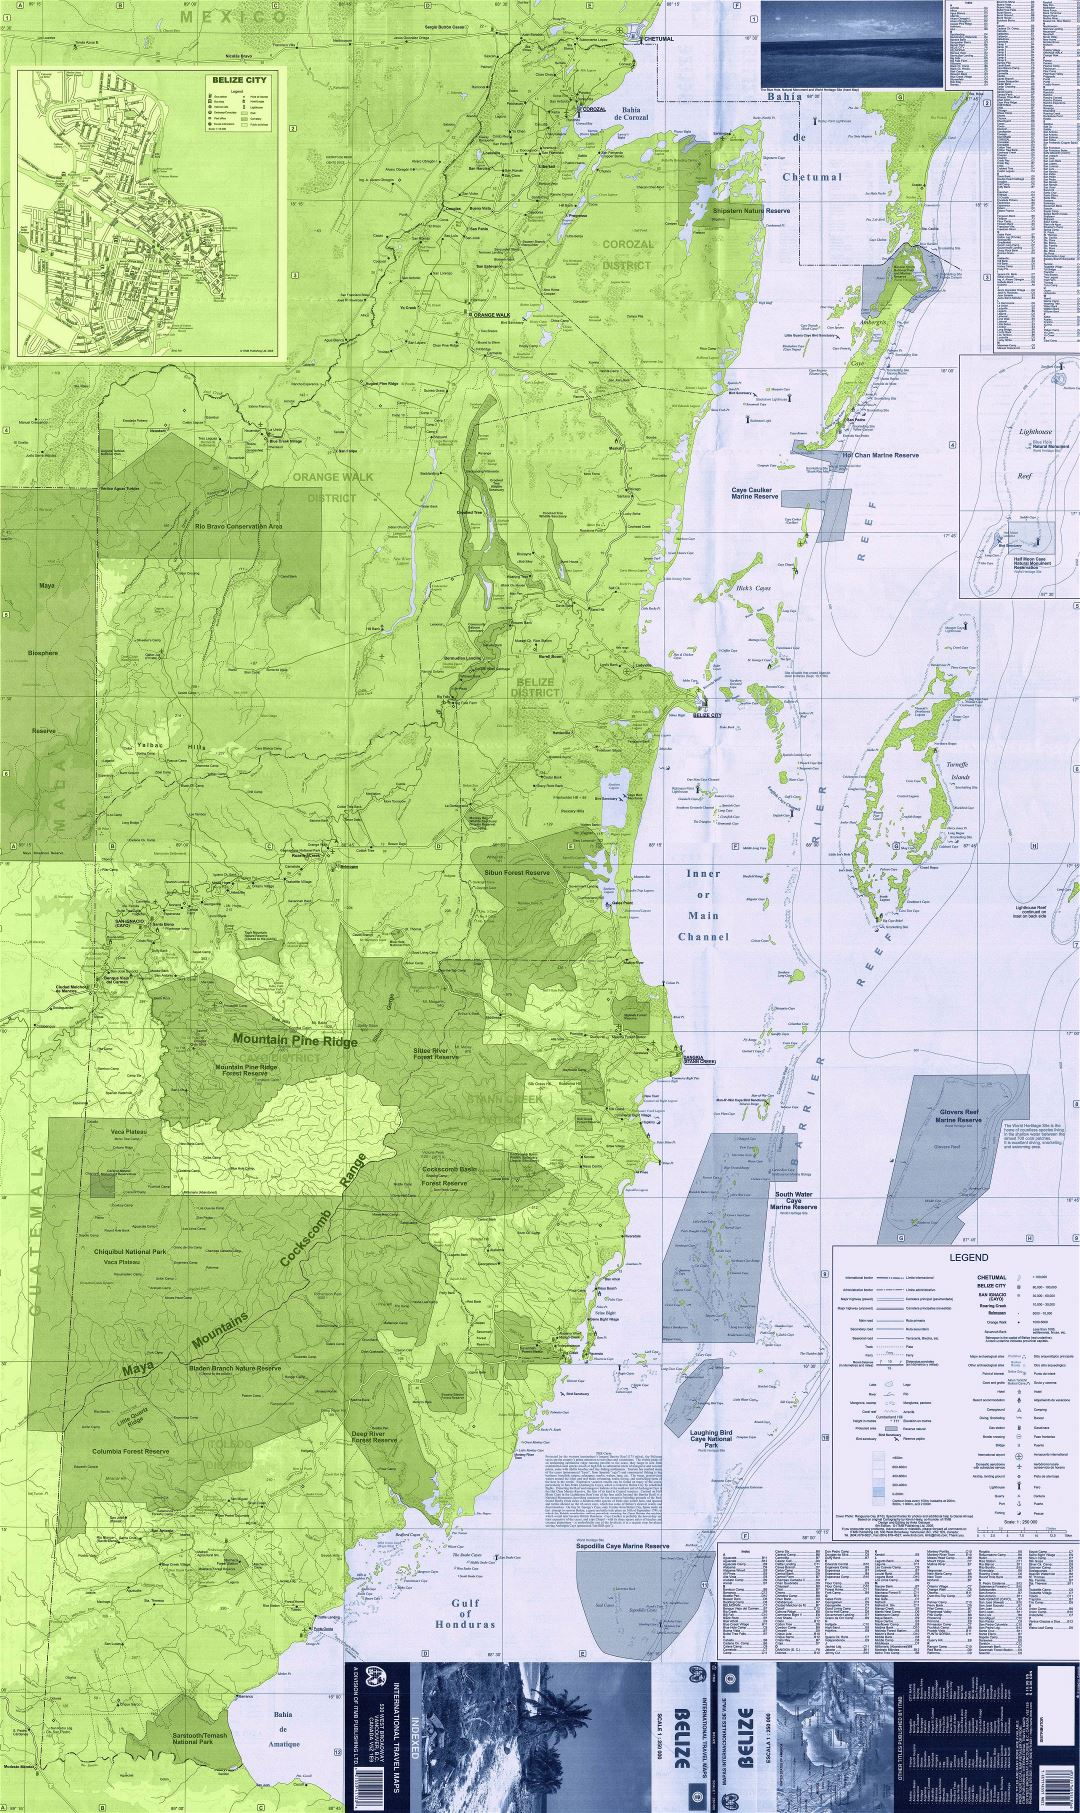 Large scale map of Belize   Belize   North America   Mapsland   Maps ...